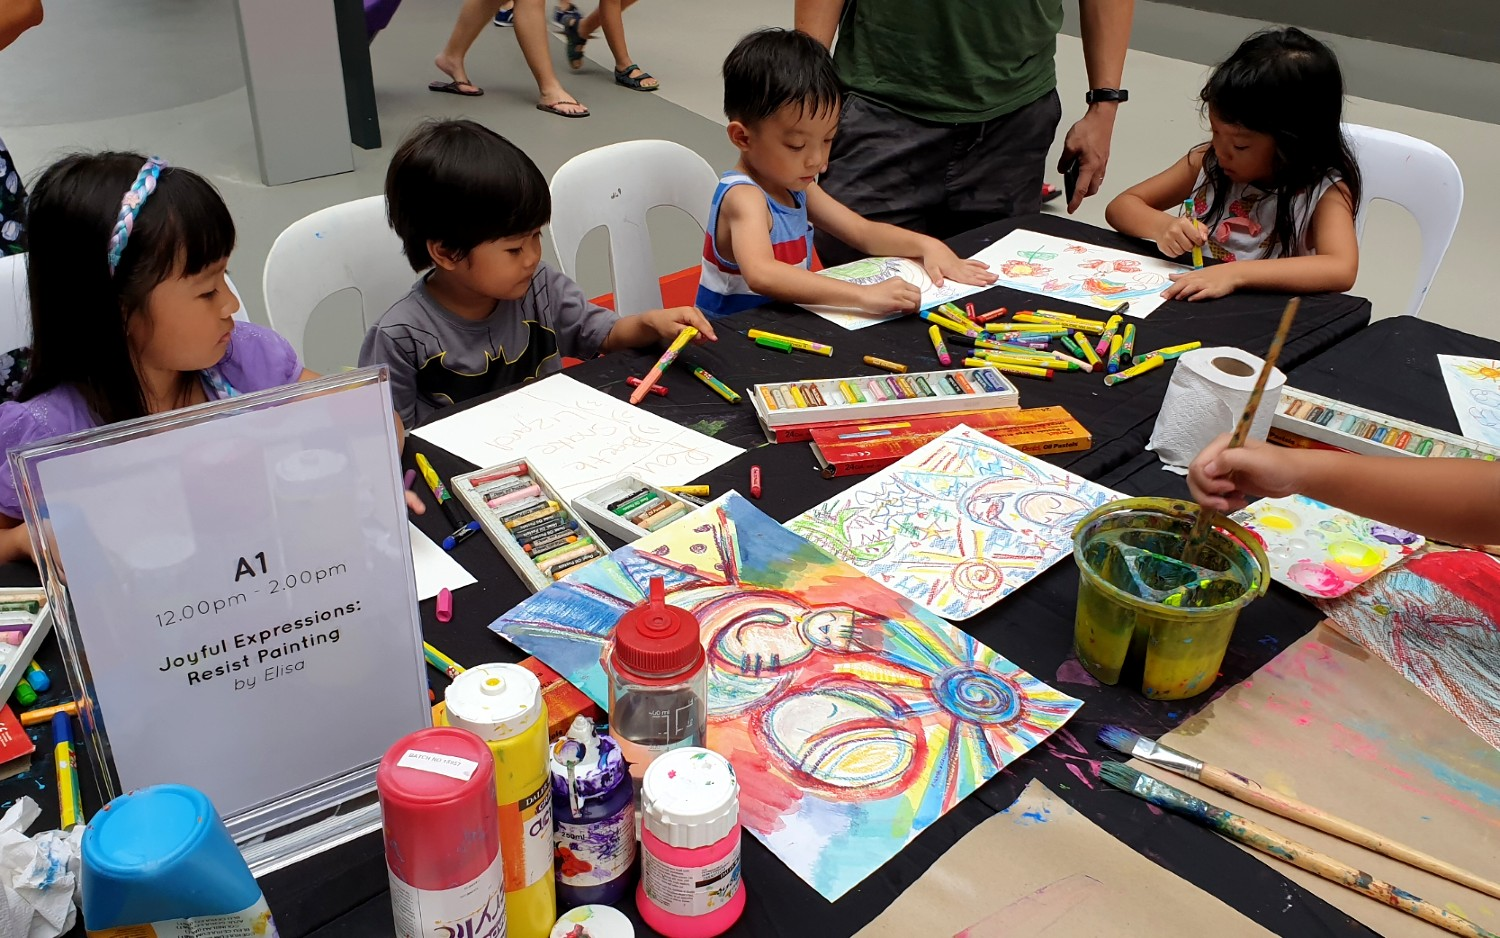 Community Outreach: Resist Painting Workshop with SAMH